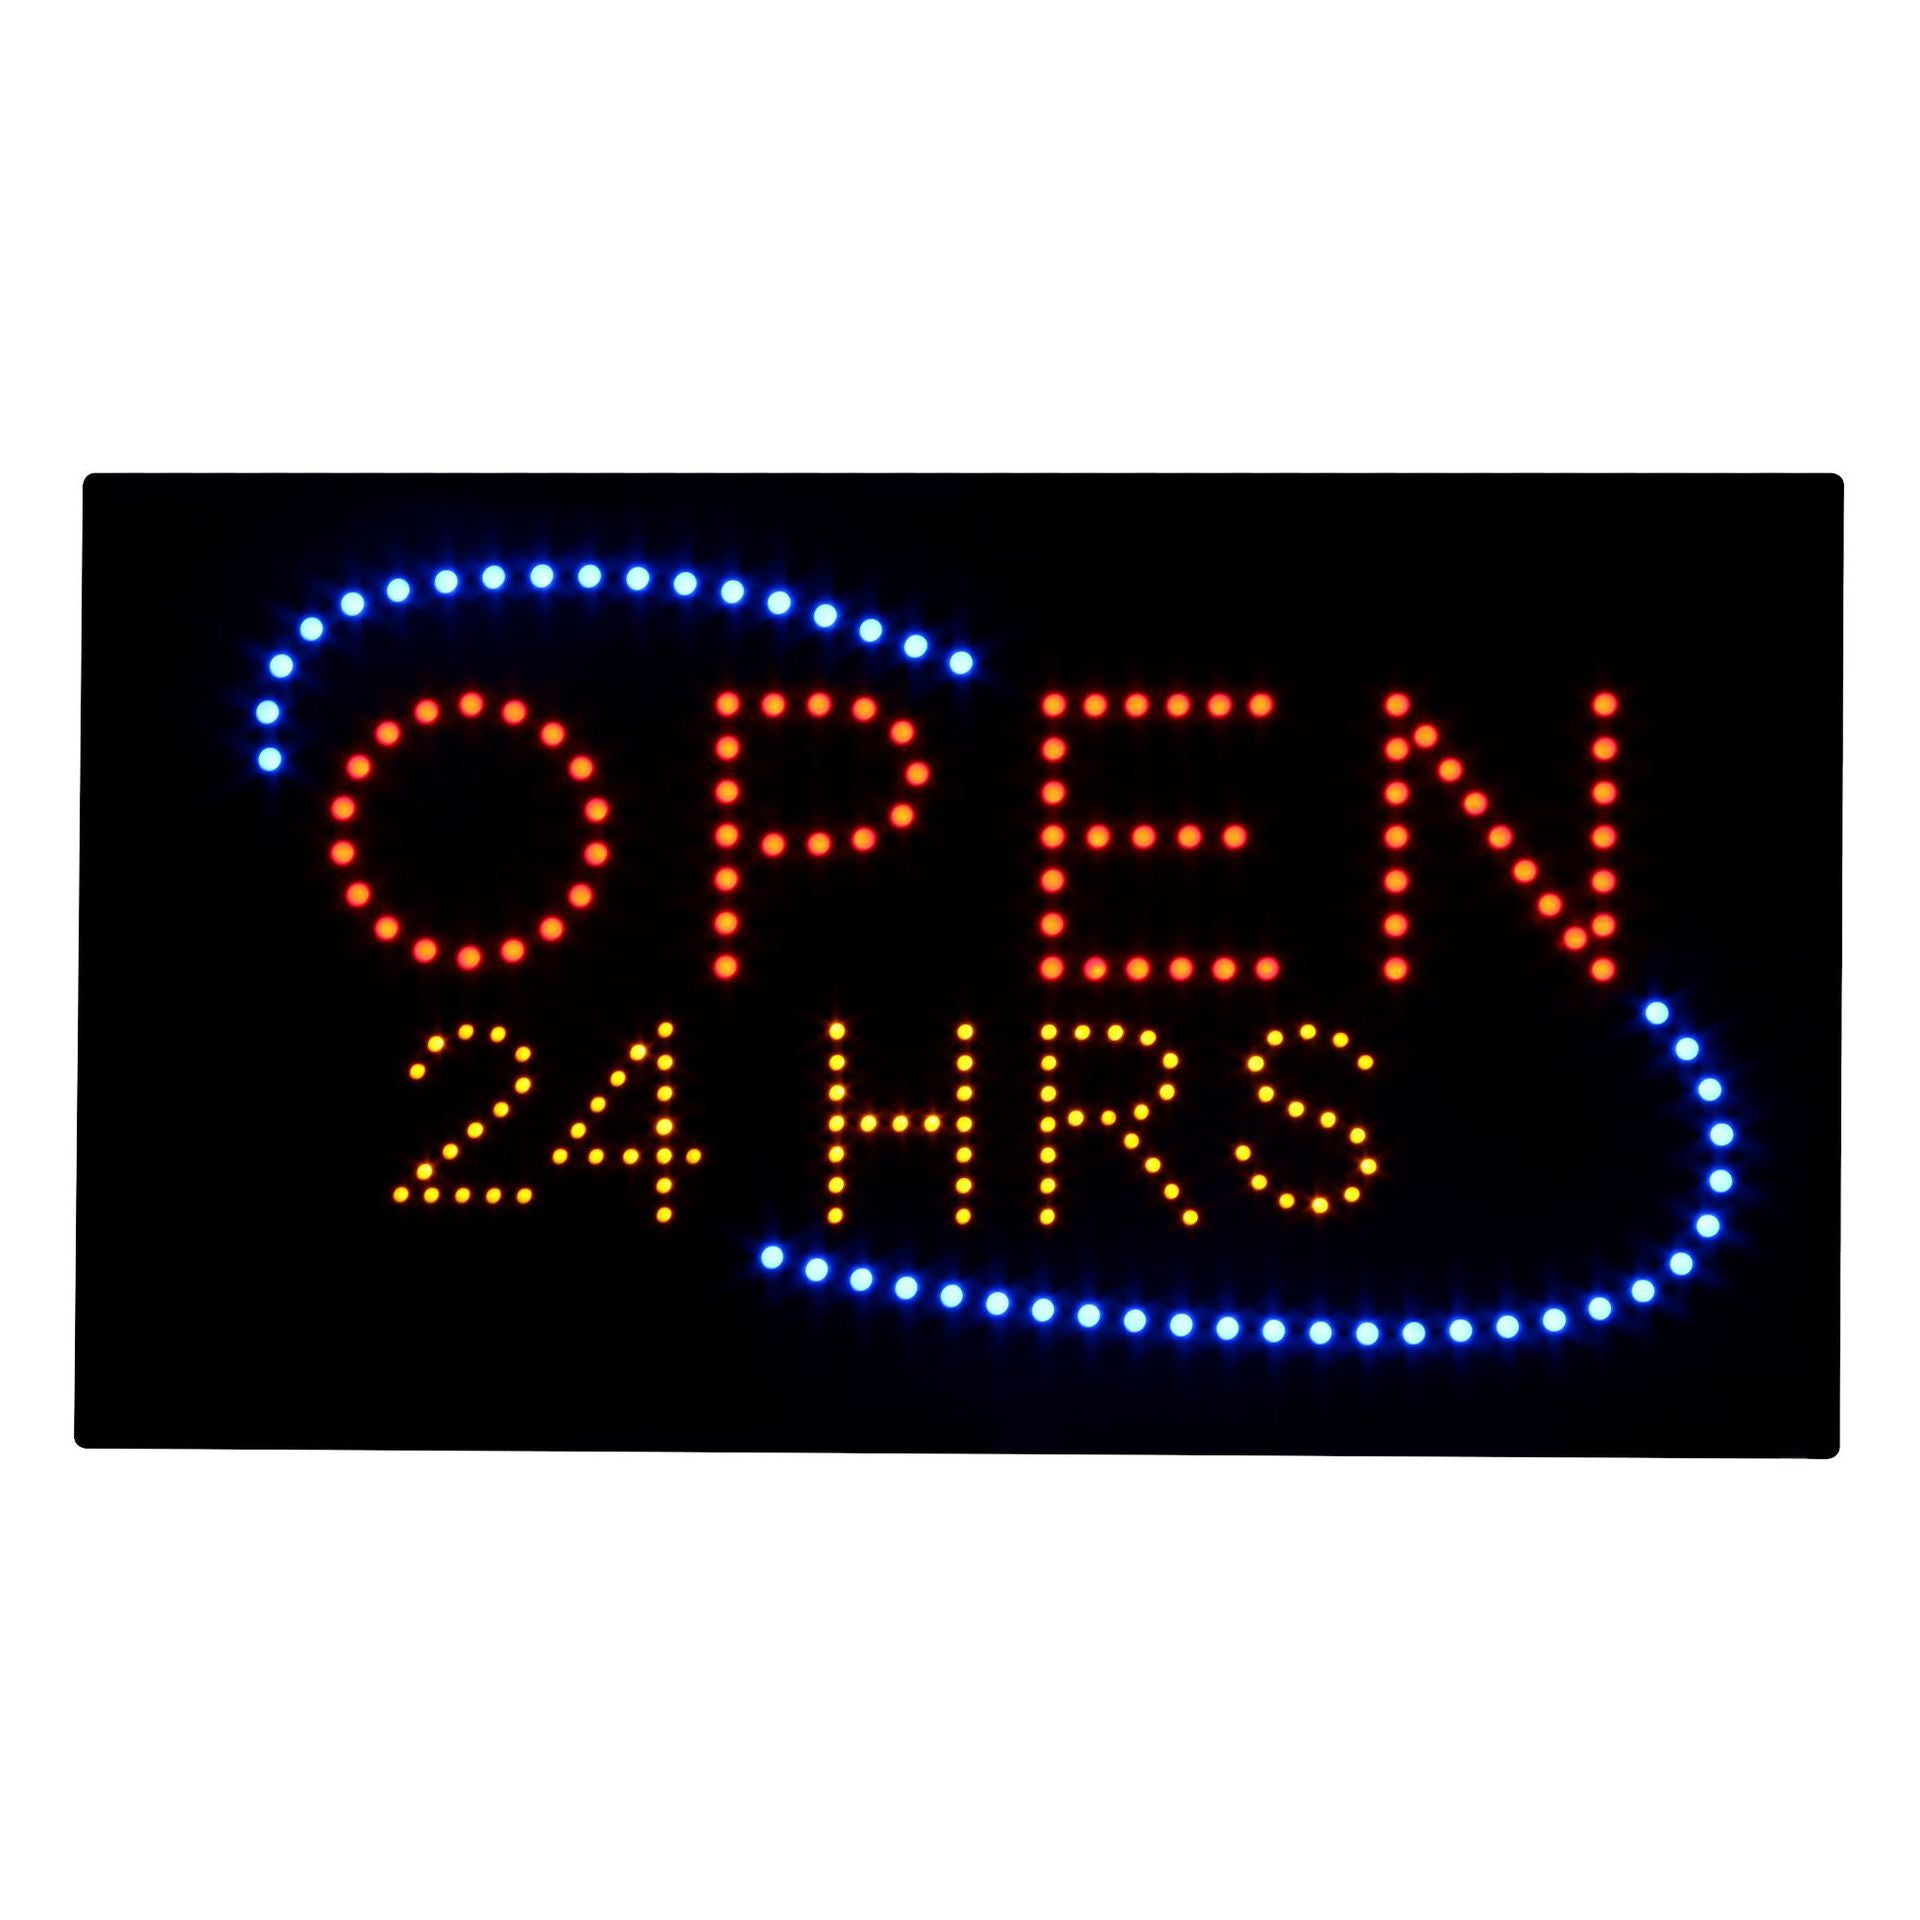 Supply time sign light box 24 hours light box open 24h light box open sig